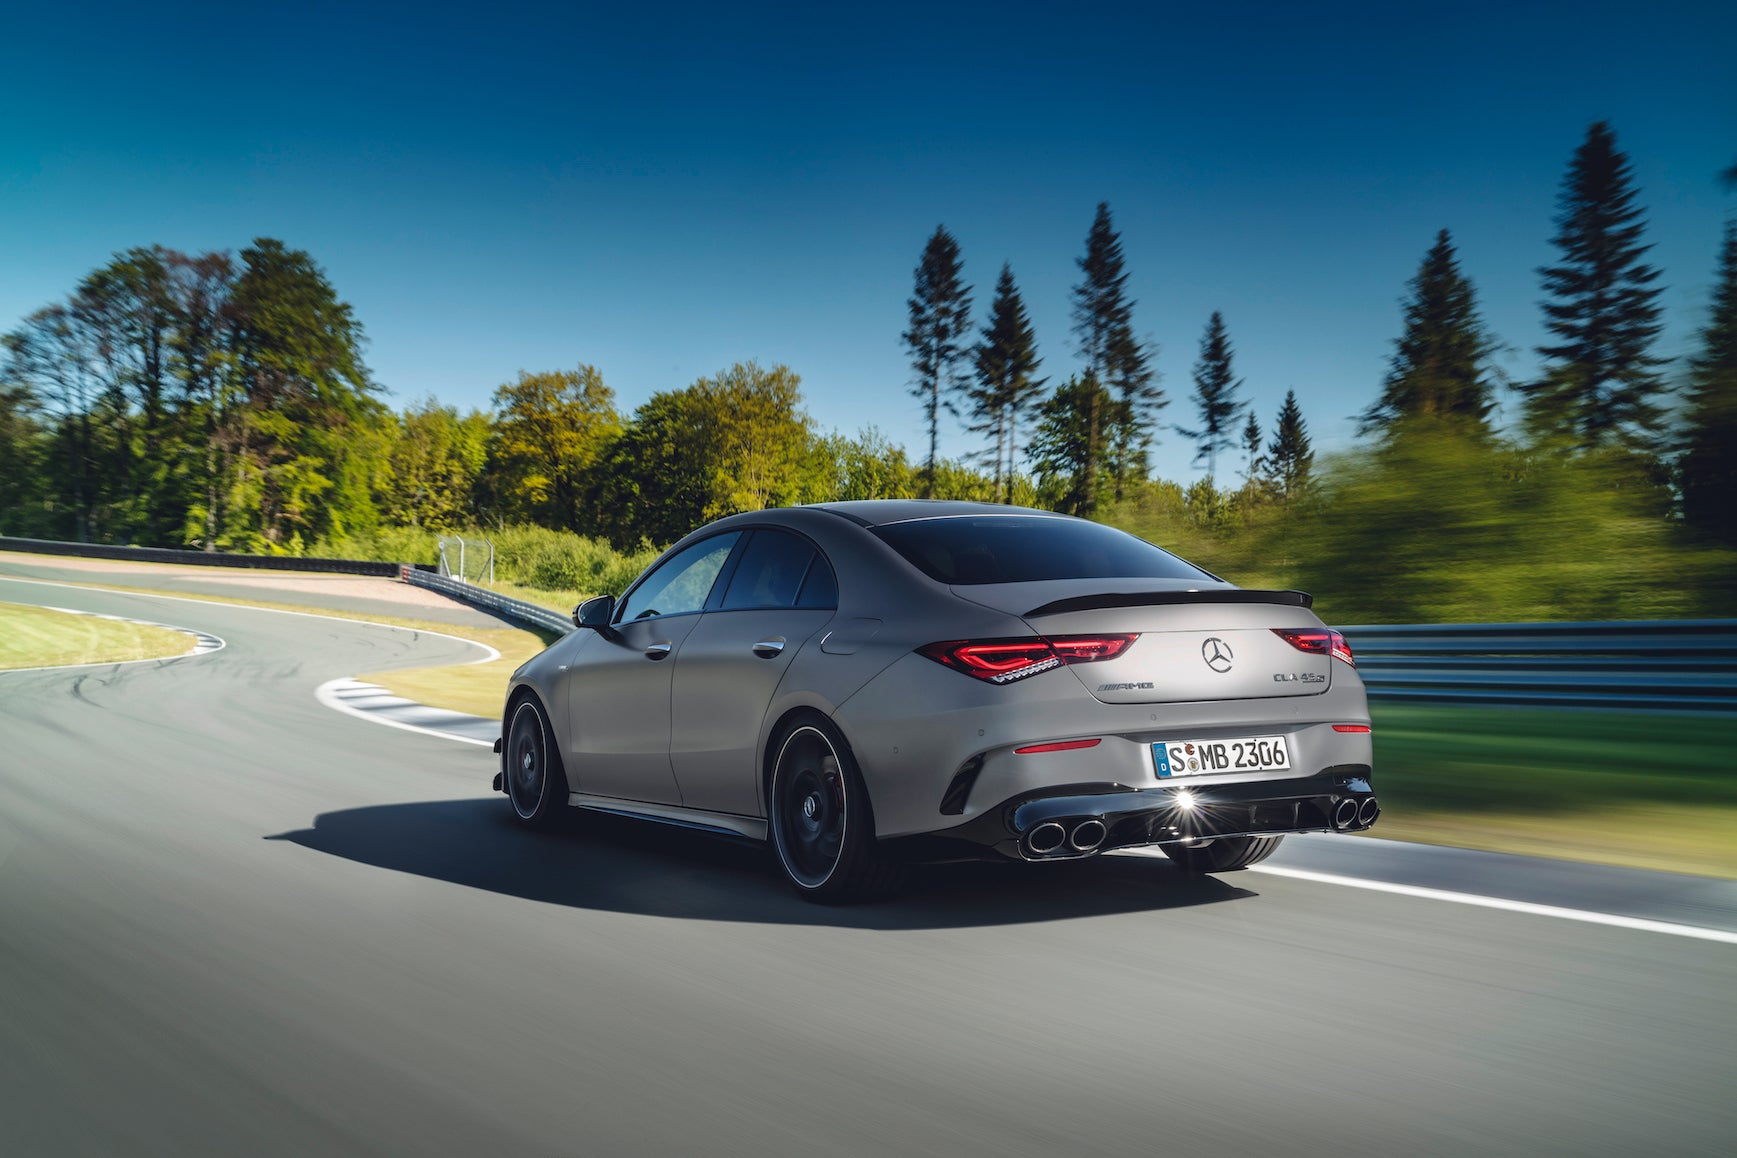 Mercedes-AMG A 45 S 4MATIC+ and CLA 45 S 4MATIC+